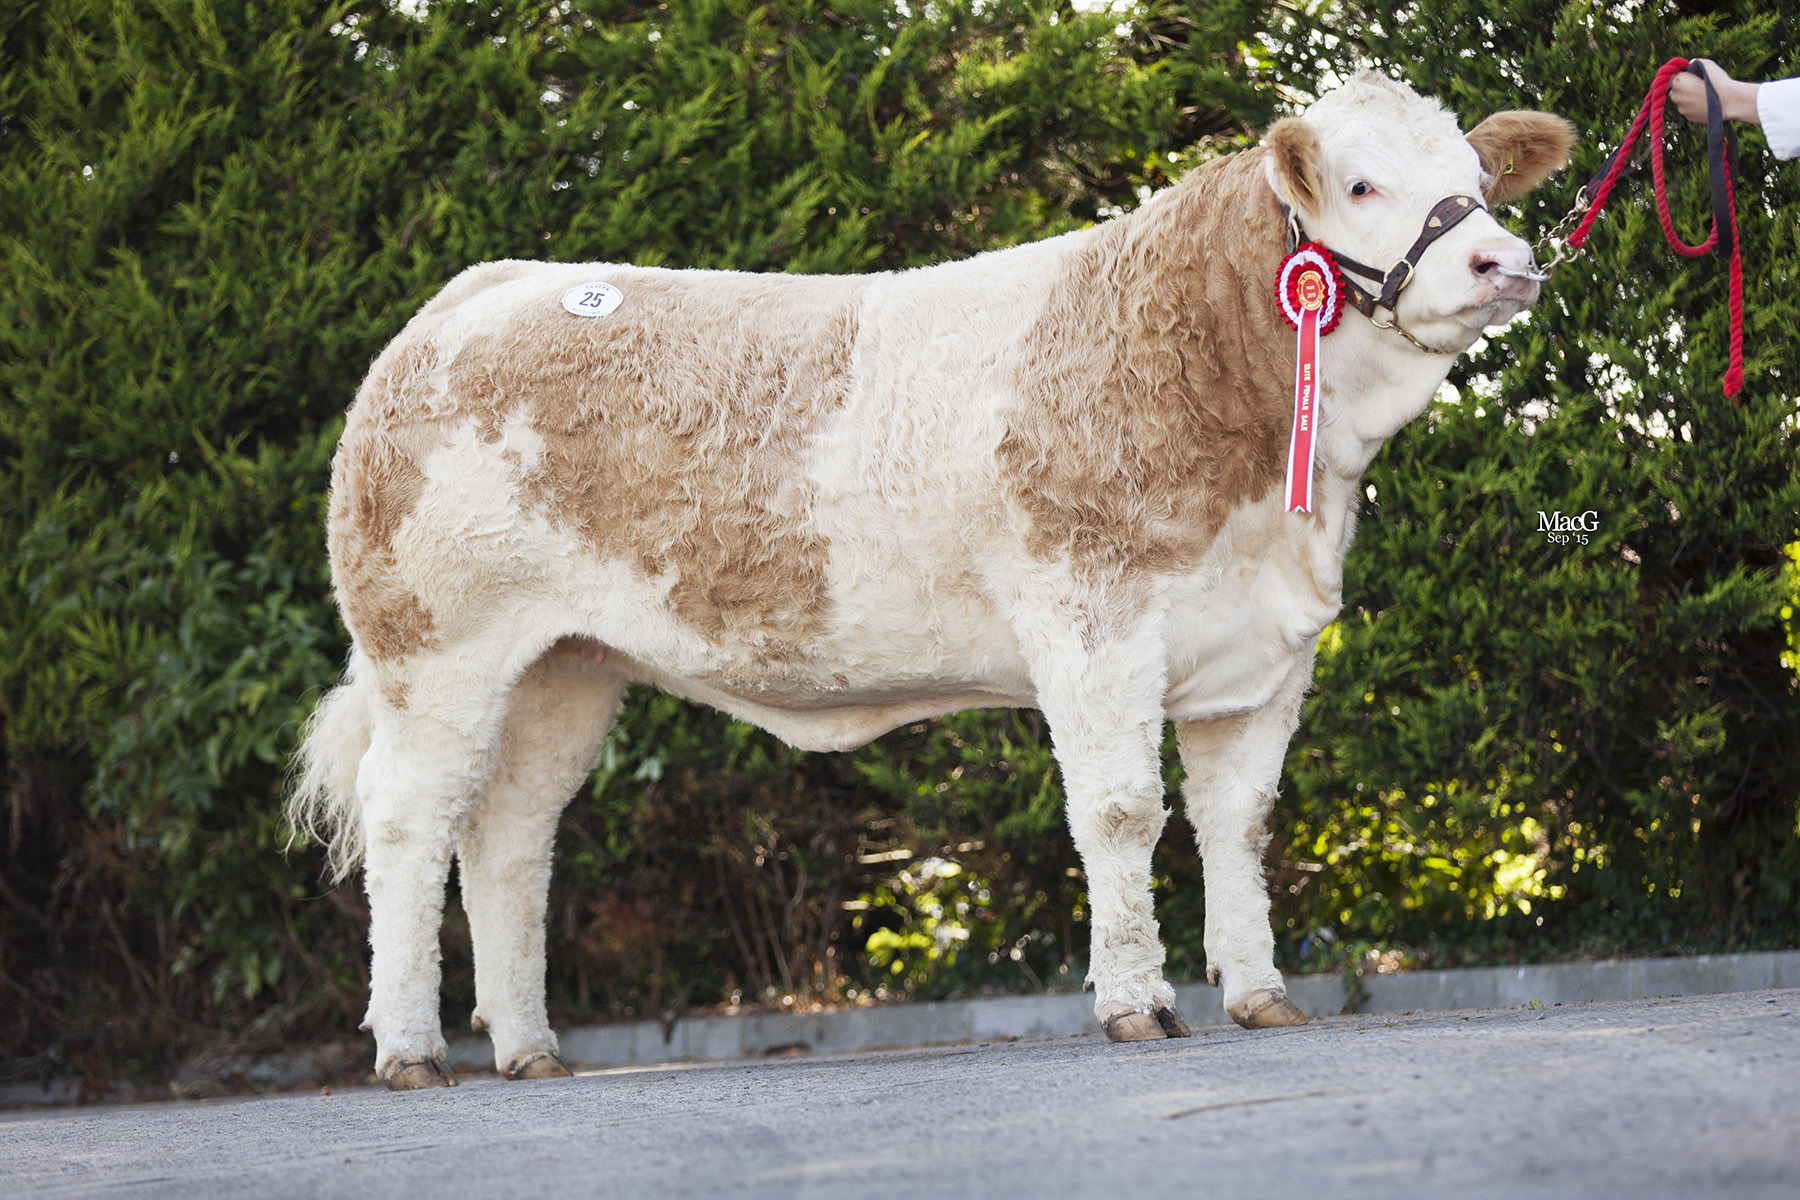 The first prize winning Derrycallaghan Fancy Me sold at 4600gns.